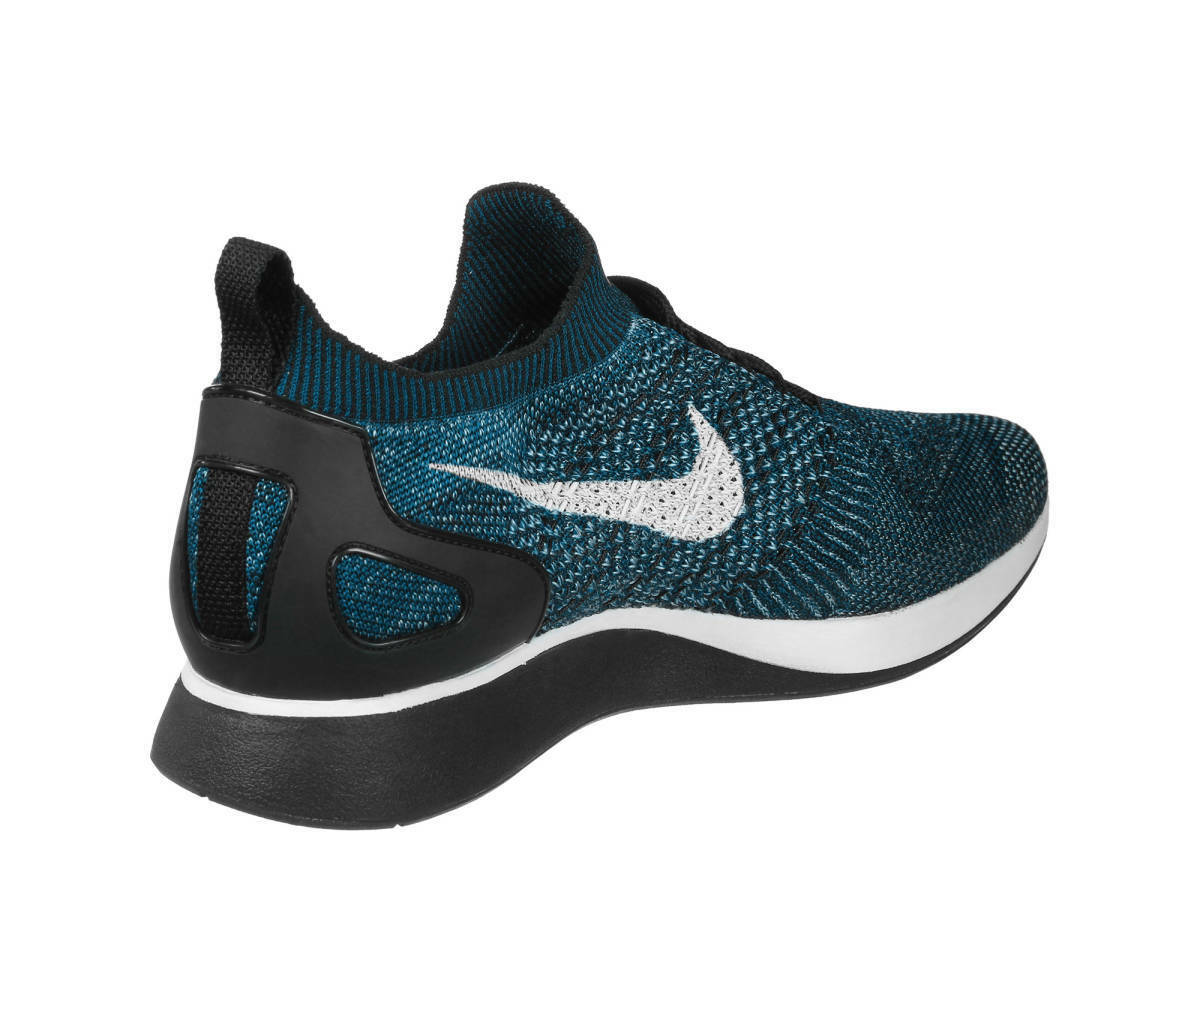 check out bf4a7 d1a5c ... Nike Mariah Flyknit Racer sz sz sz 11.5 918264 300 trainer running  shoes 6ddea3 ...